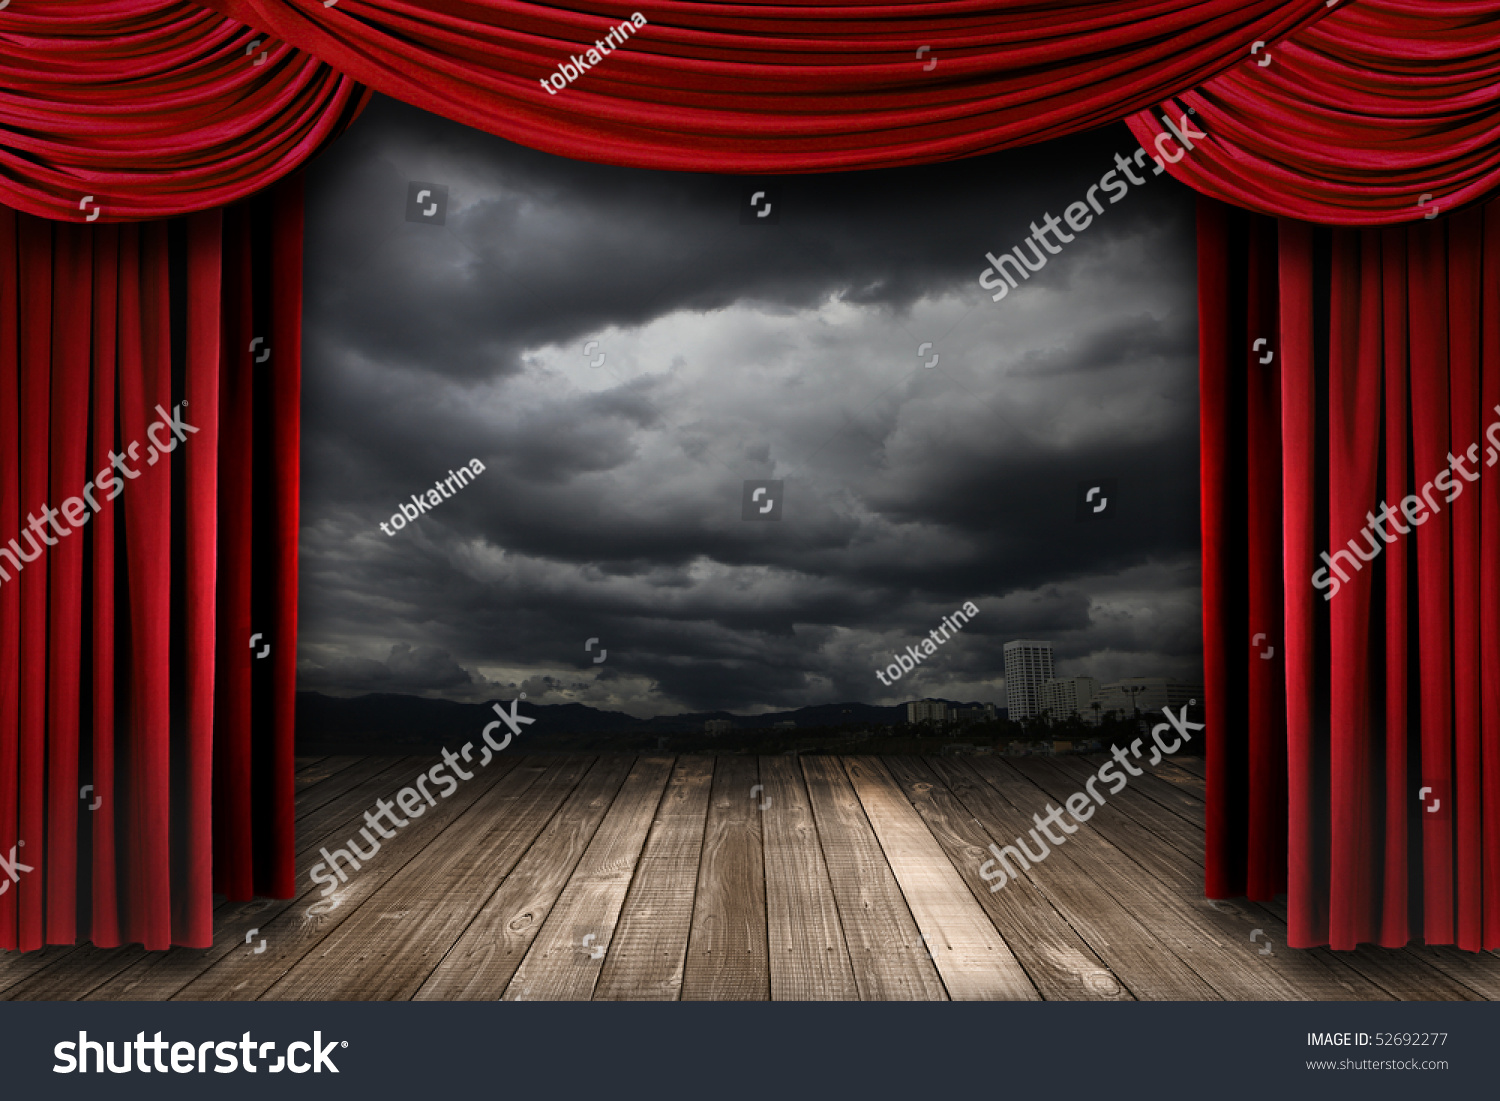 Red stage curtains - Bright Stage With Red Velvet Theater Curtains And Dramatic Sky Background